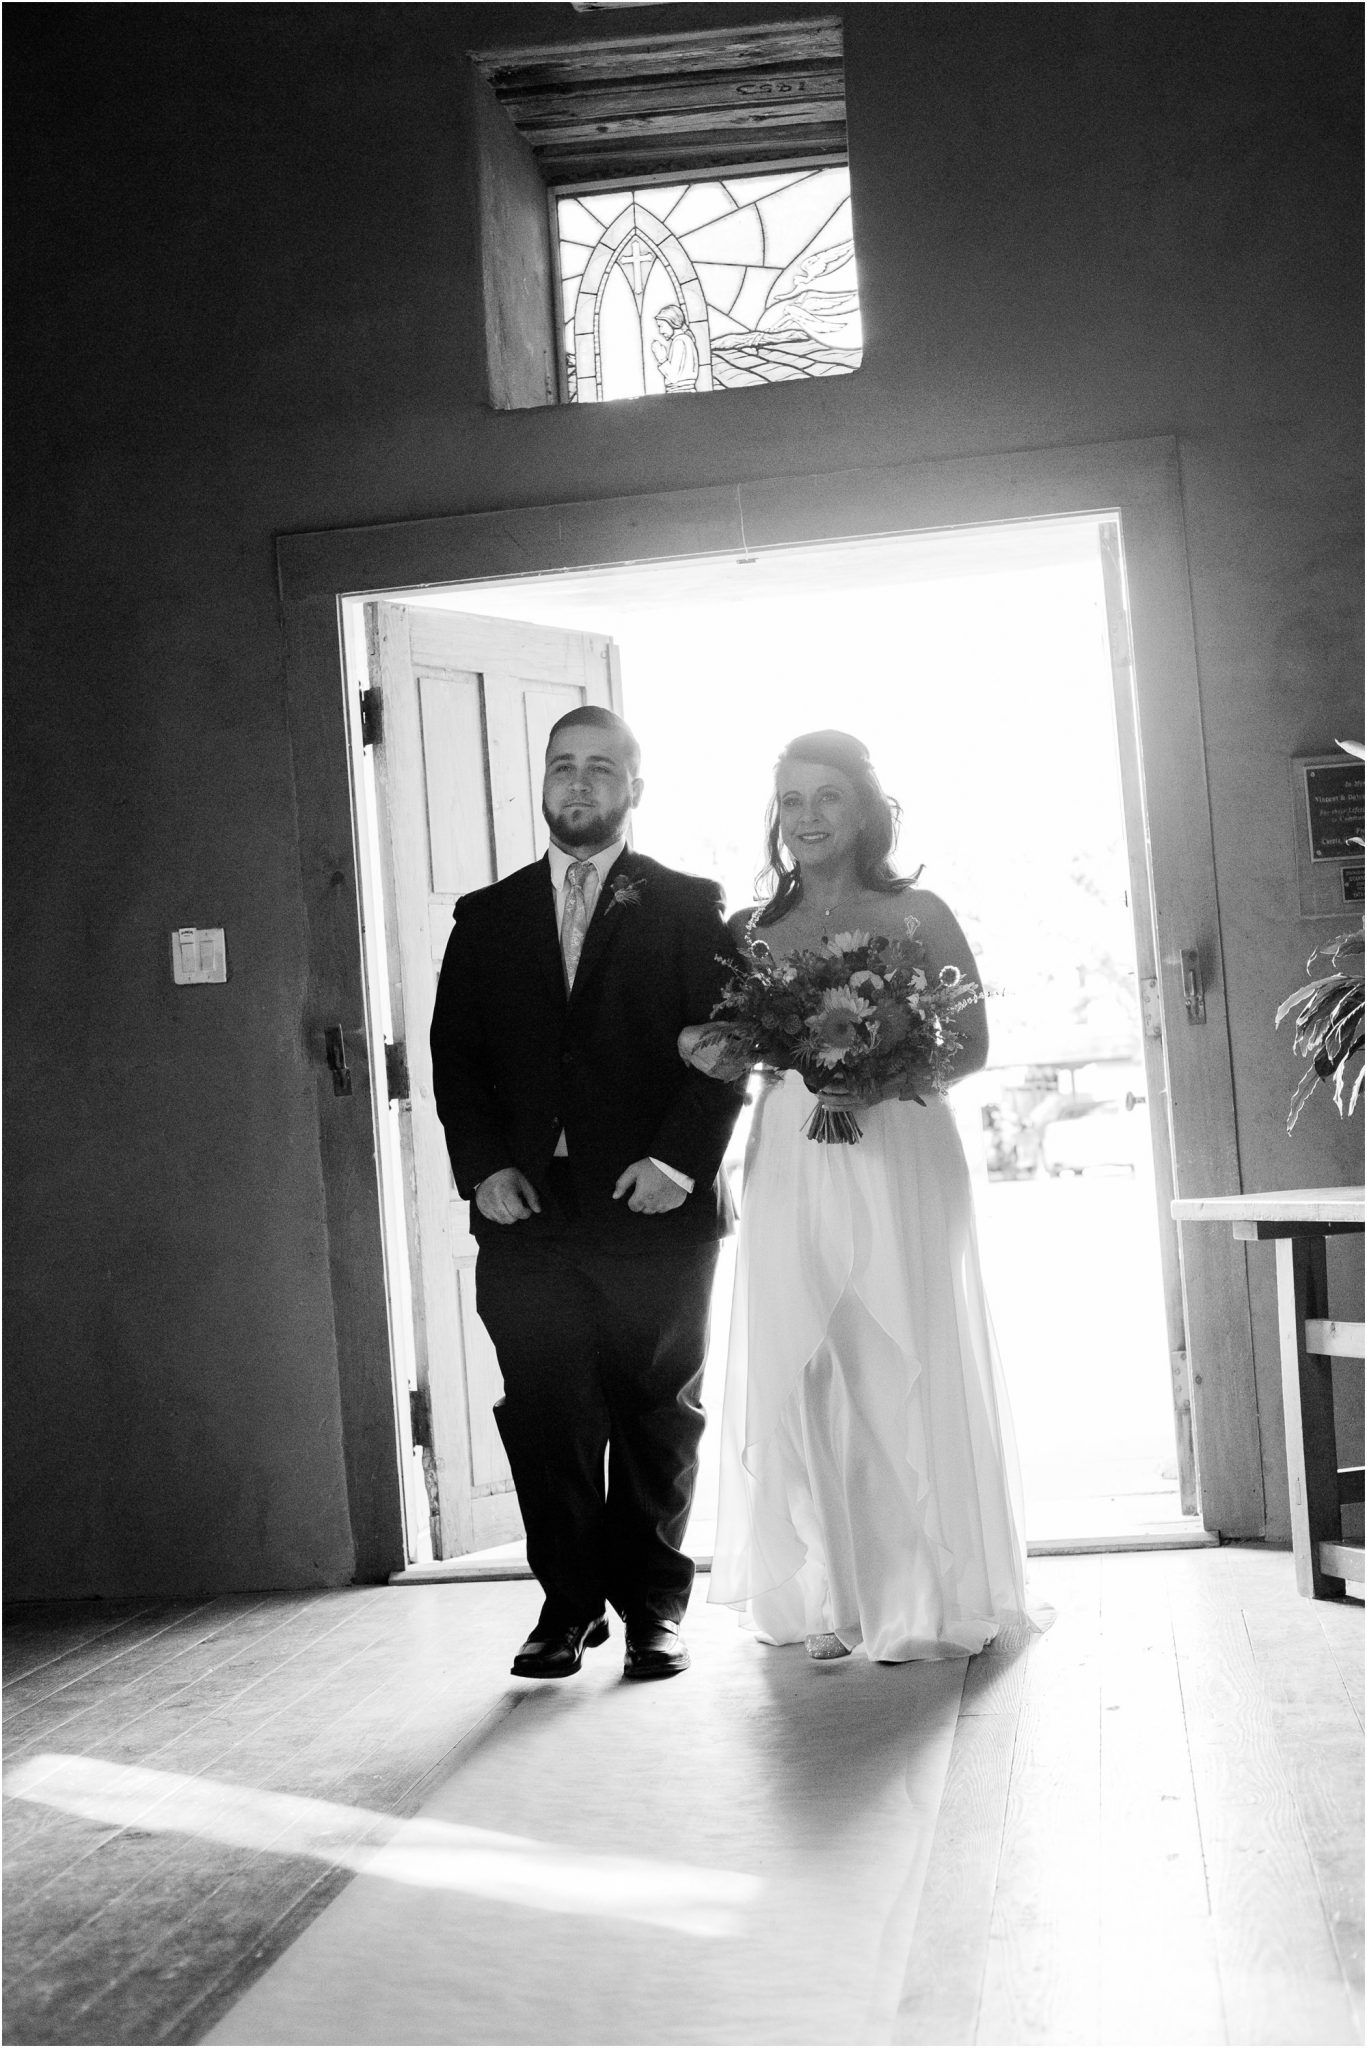 044BlueRosePhotography_ Albuquerque wedding photographers